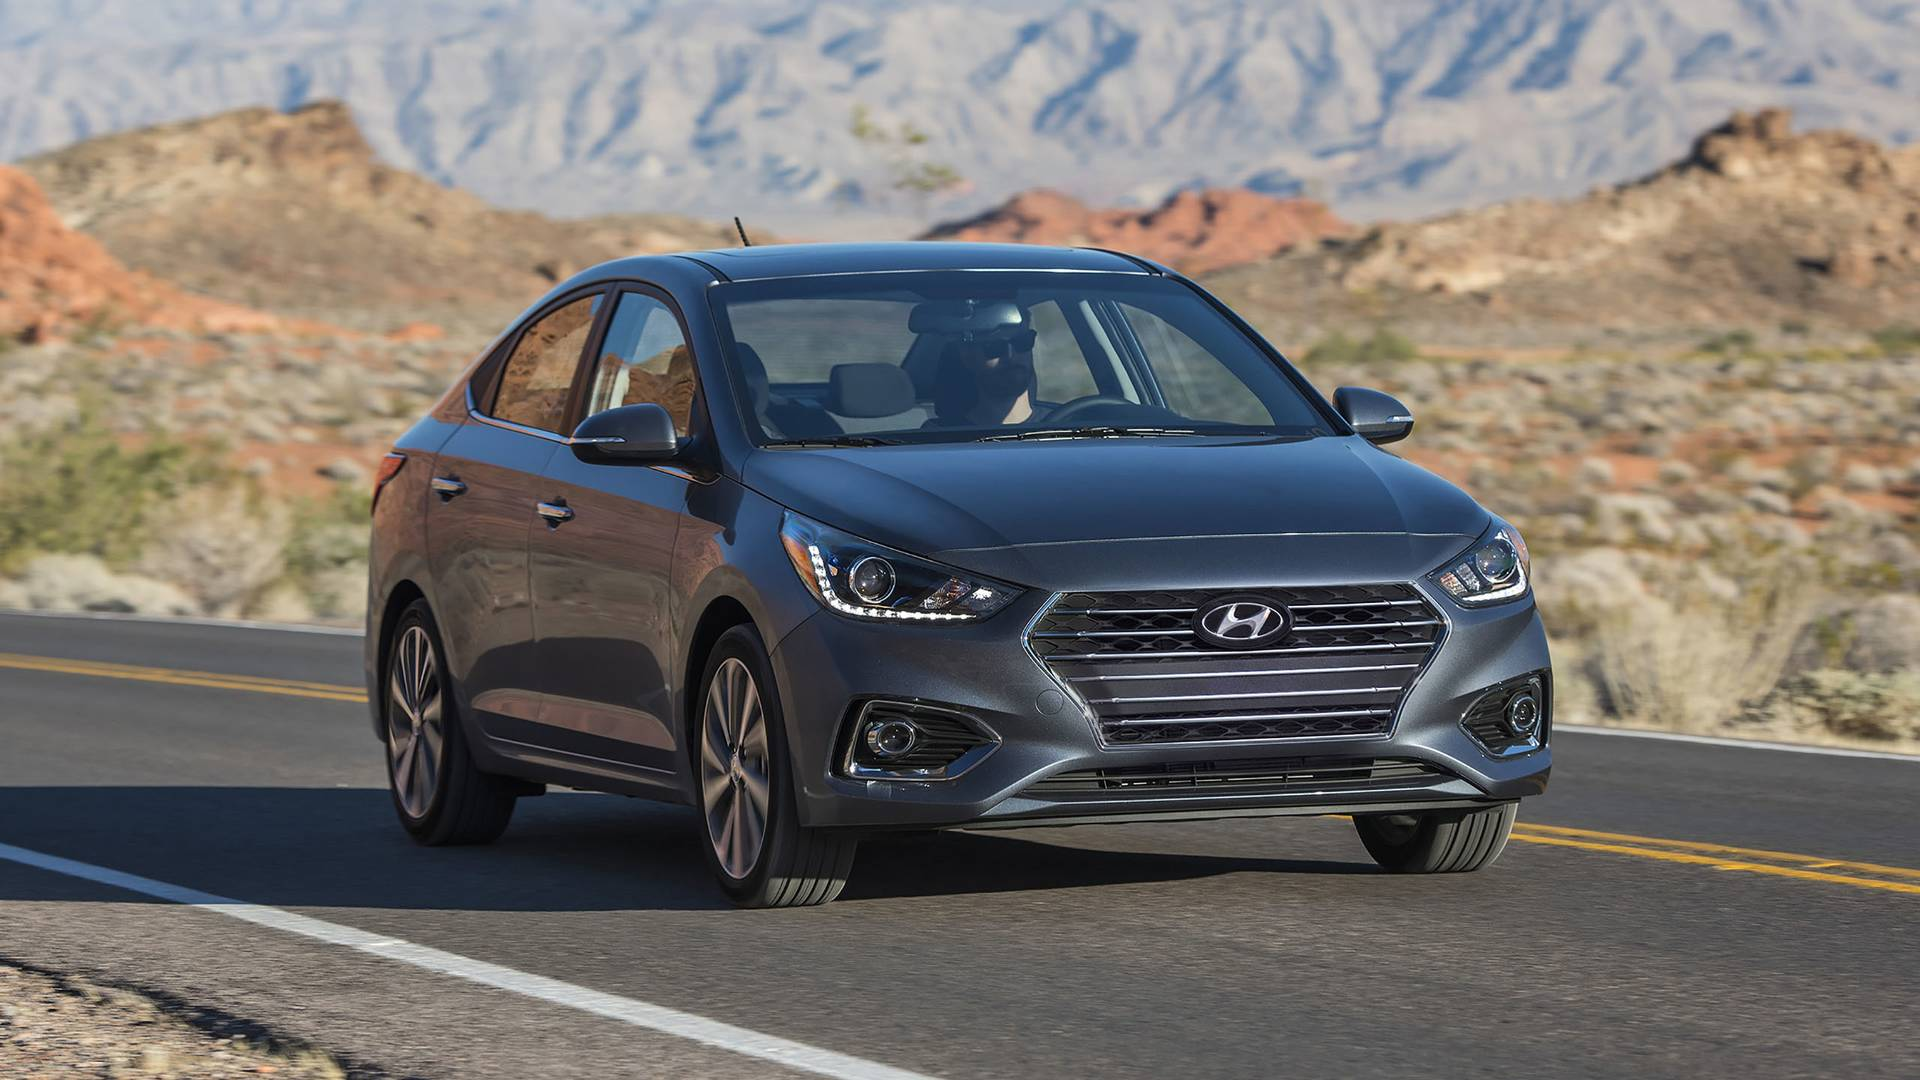 typical bigger compact further presence average nerd up img hyundai it gls doesn food the your like far than sedan look review car a sub looks t this part something chain accent with